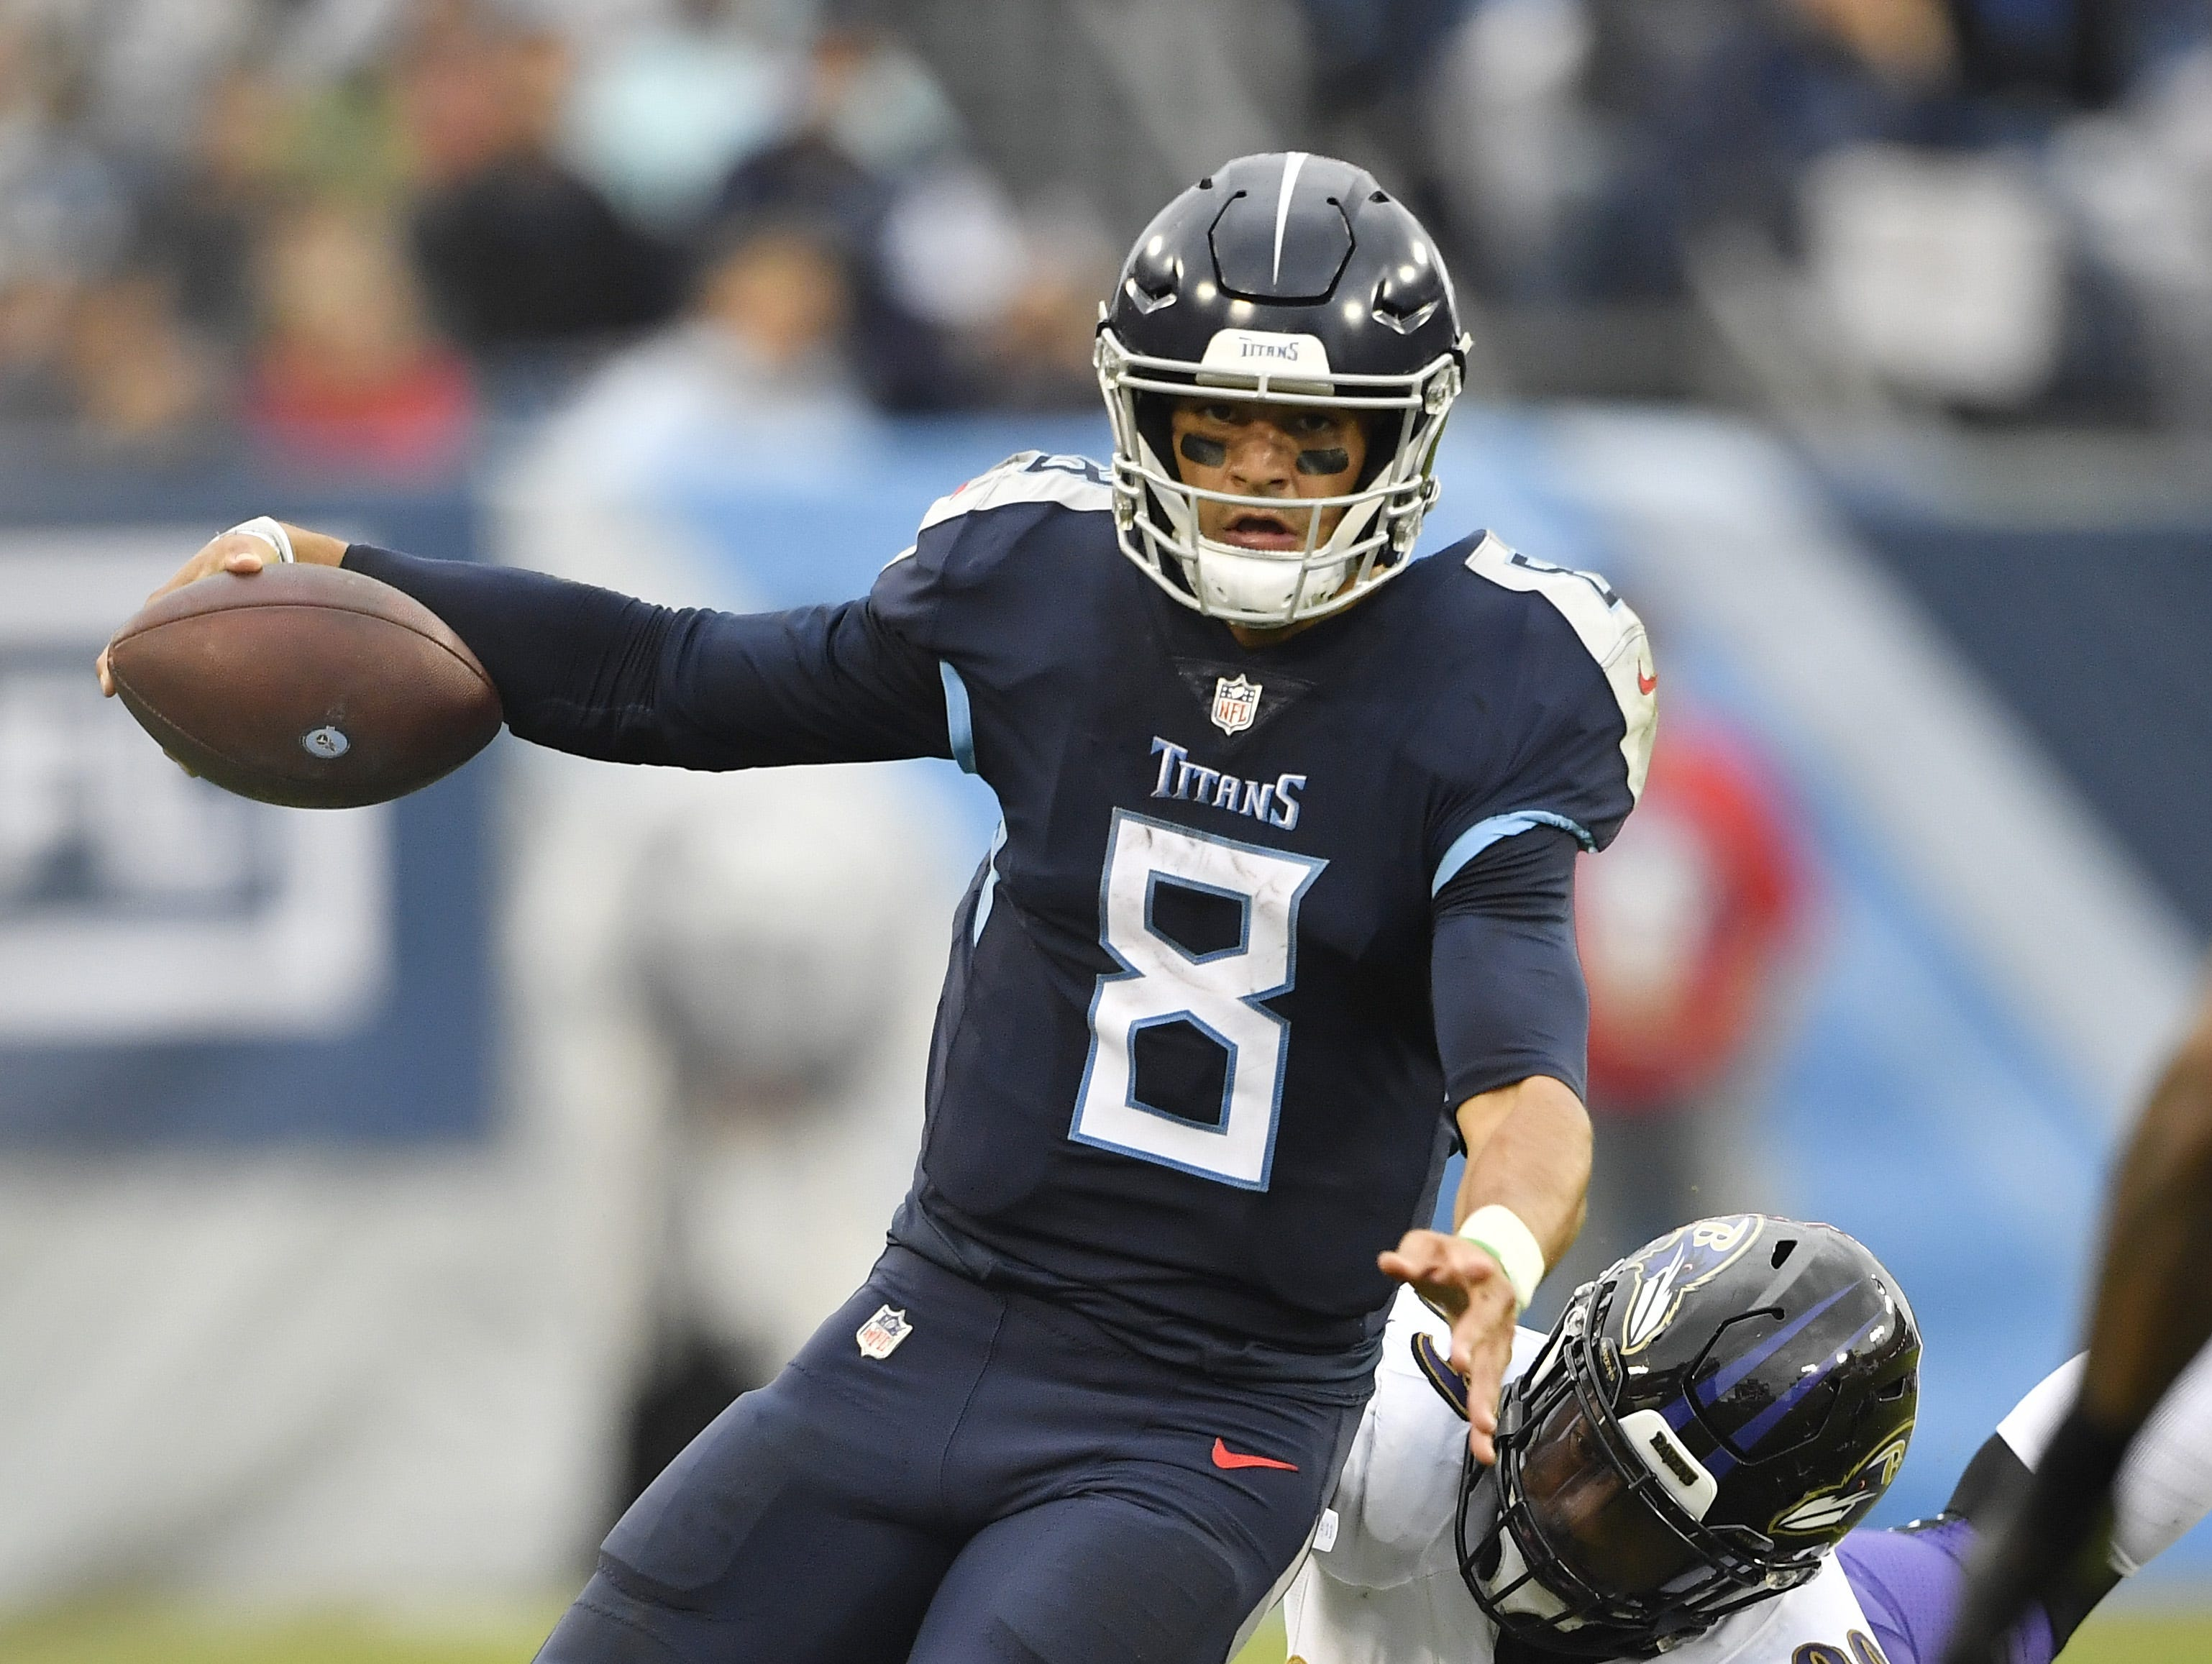 Oct. 14: Ravens 21, Titans 0 --   Titans quarterback Marcus Mariota (8) scrambles out of the pocket in the second quarter at Nissan Stadium Sunday, Oct. 14, 2018, in Nashville, Tenn.